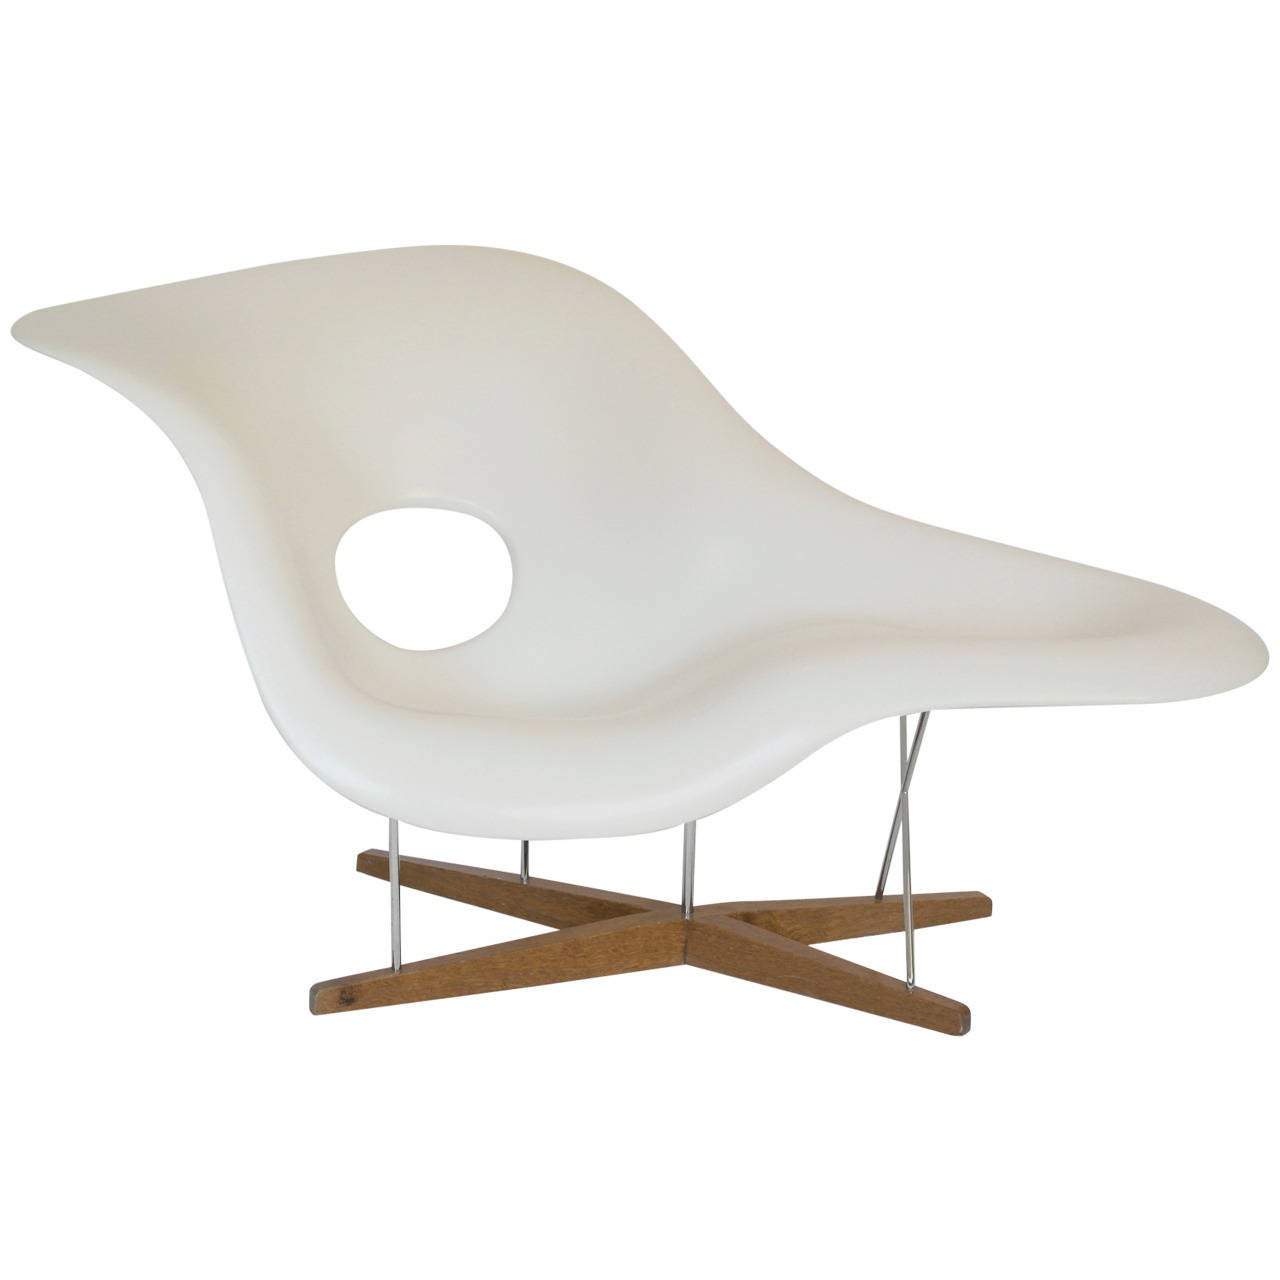 Vitra Edition La Chaise by Charles and Ray Eames For Sale at 1stdibs